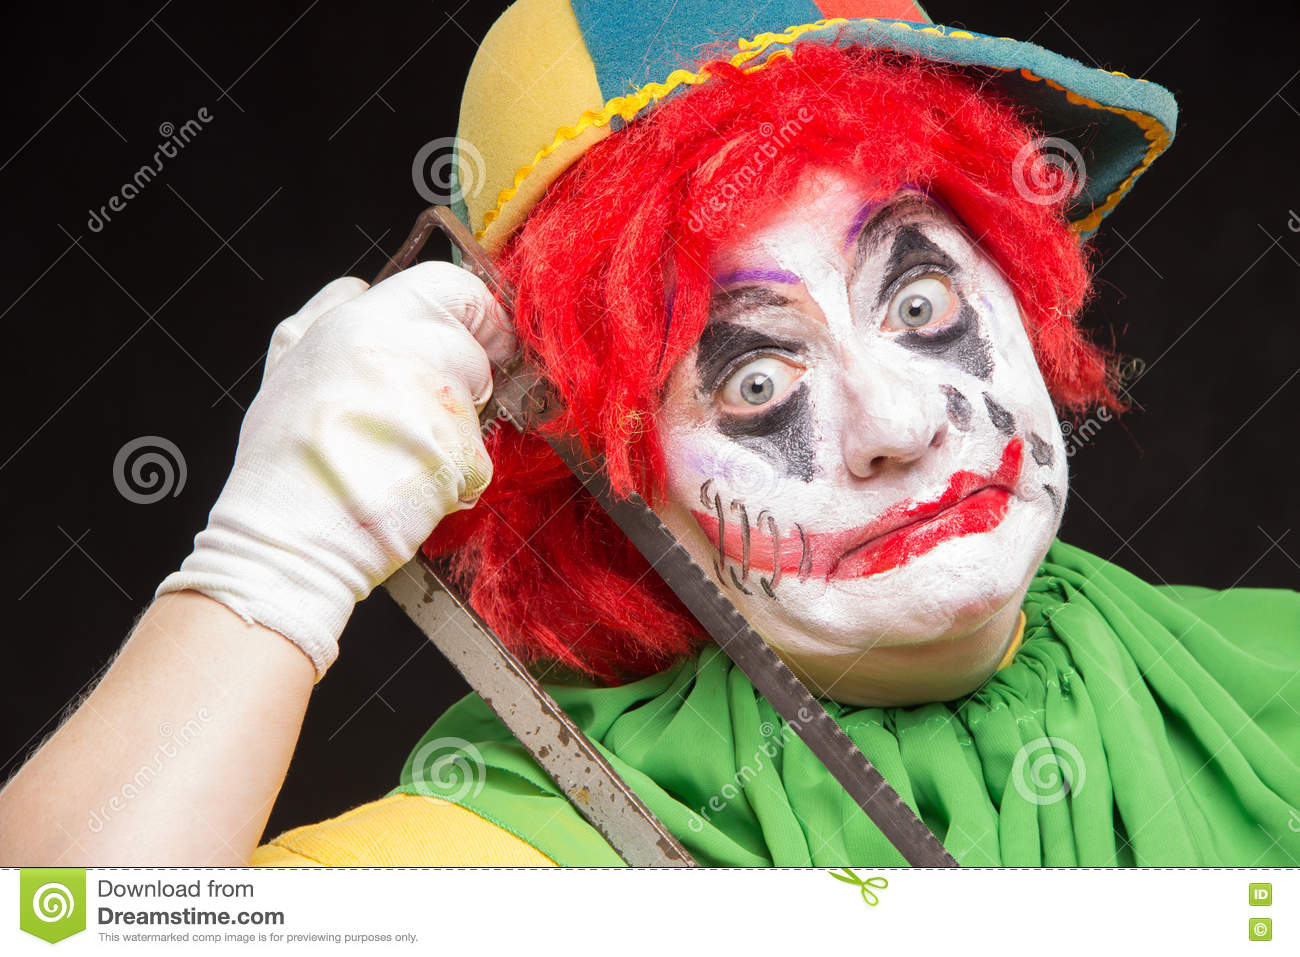 scary clown joker with a smile and red hair with a saw on a blac